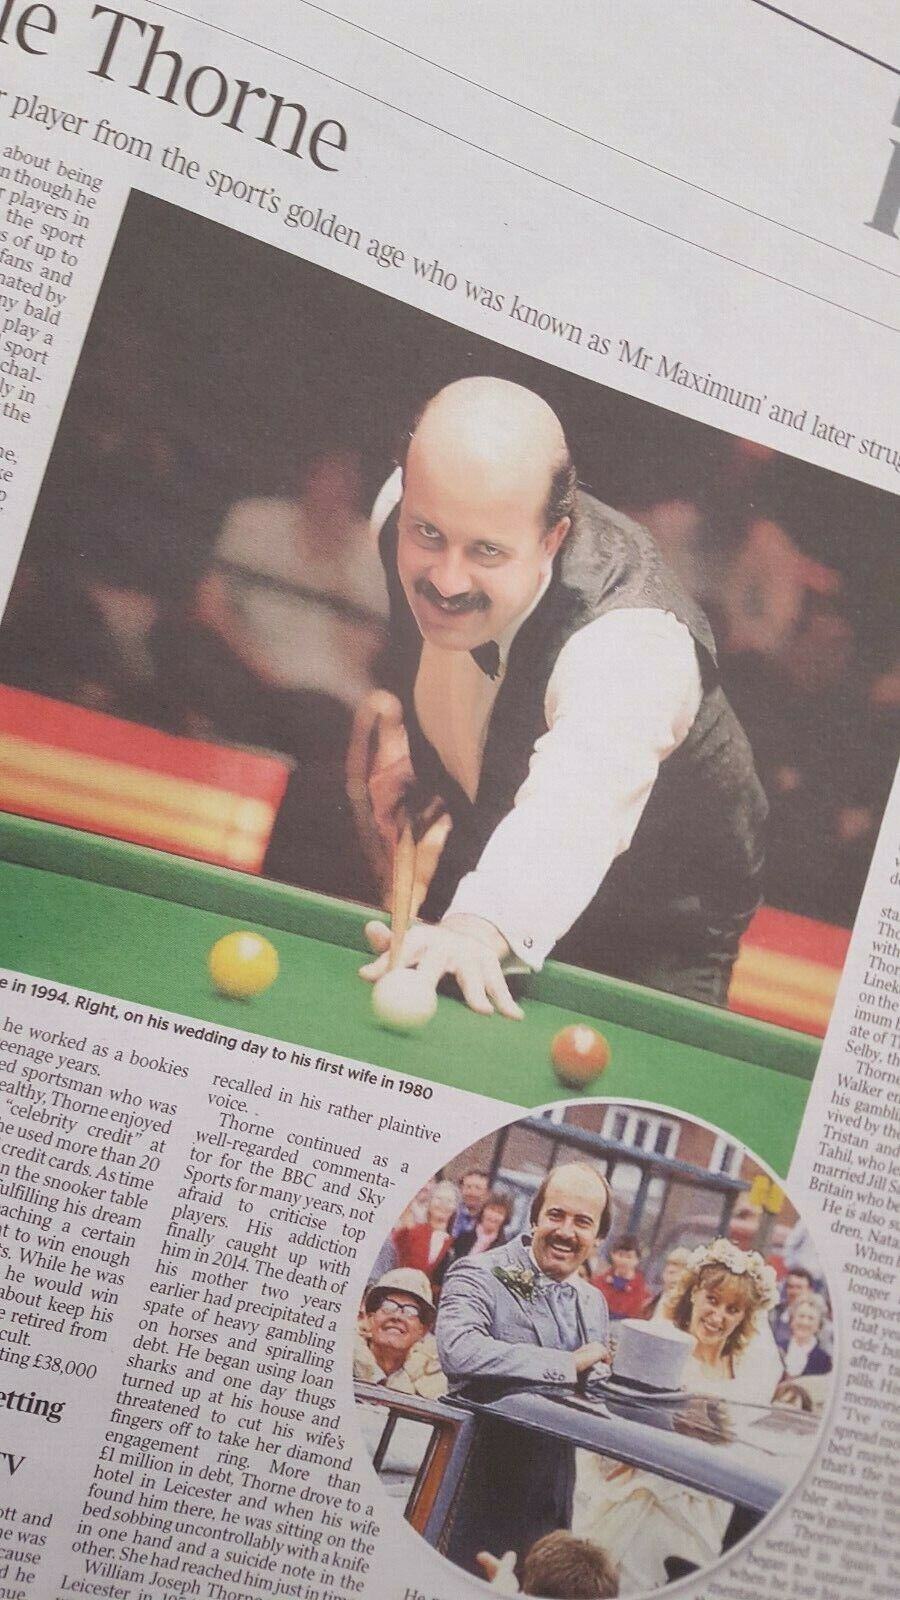 WILLIE THORNE. Times Obituary. SNOOKER PLAYER. 18.6.20 UK newspaper clipping